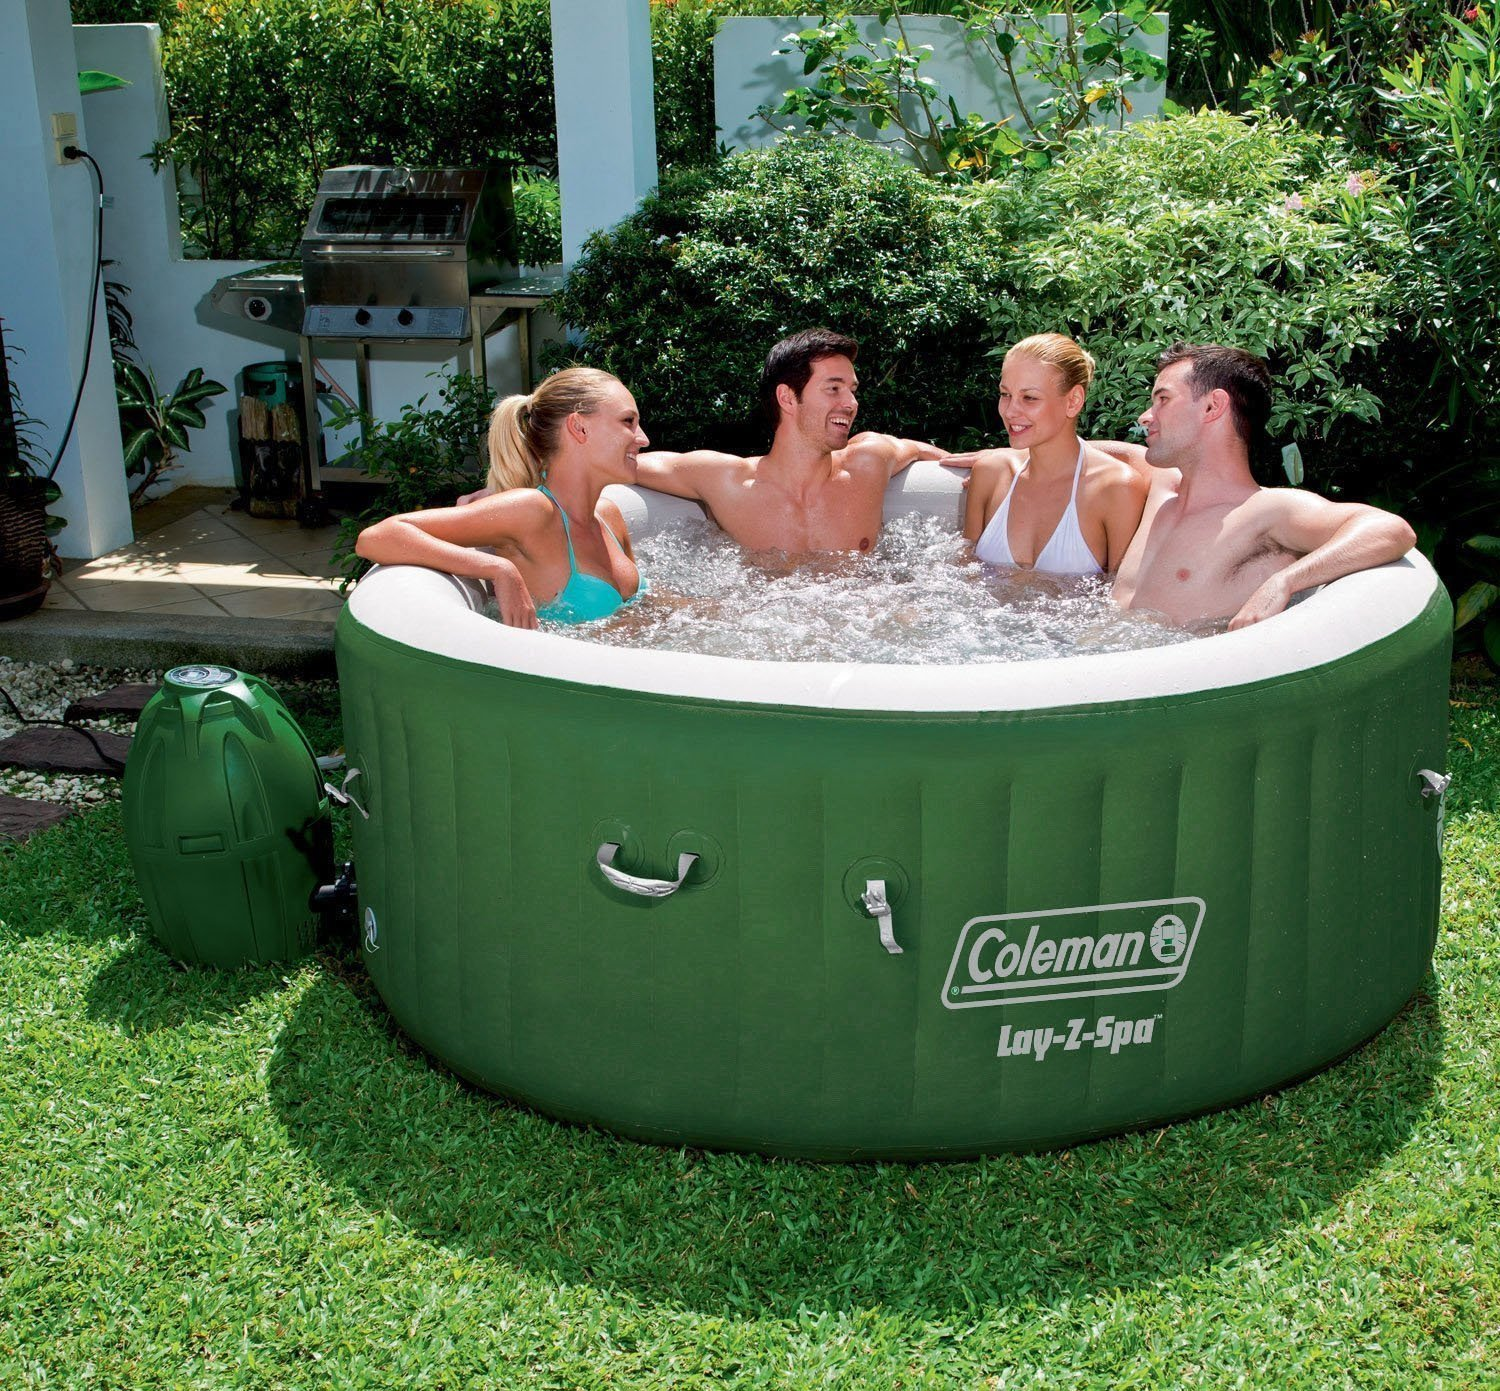 Coleman Saluspa Inflatable Hot Tub Detailed Review Laze Up